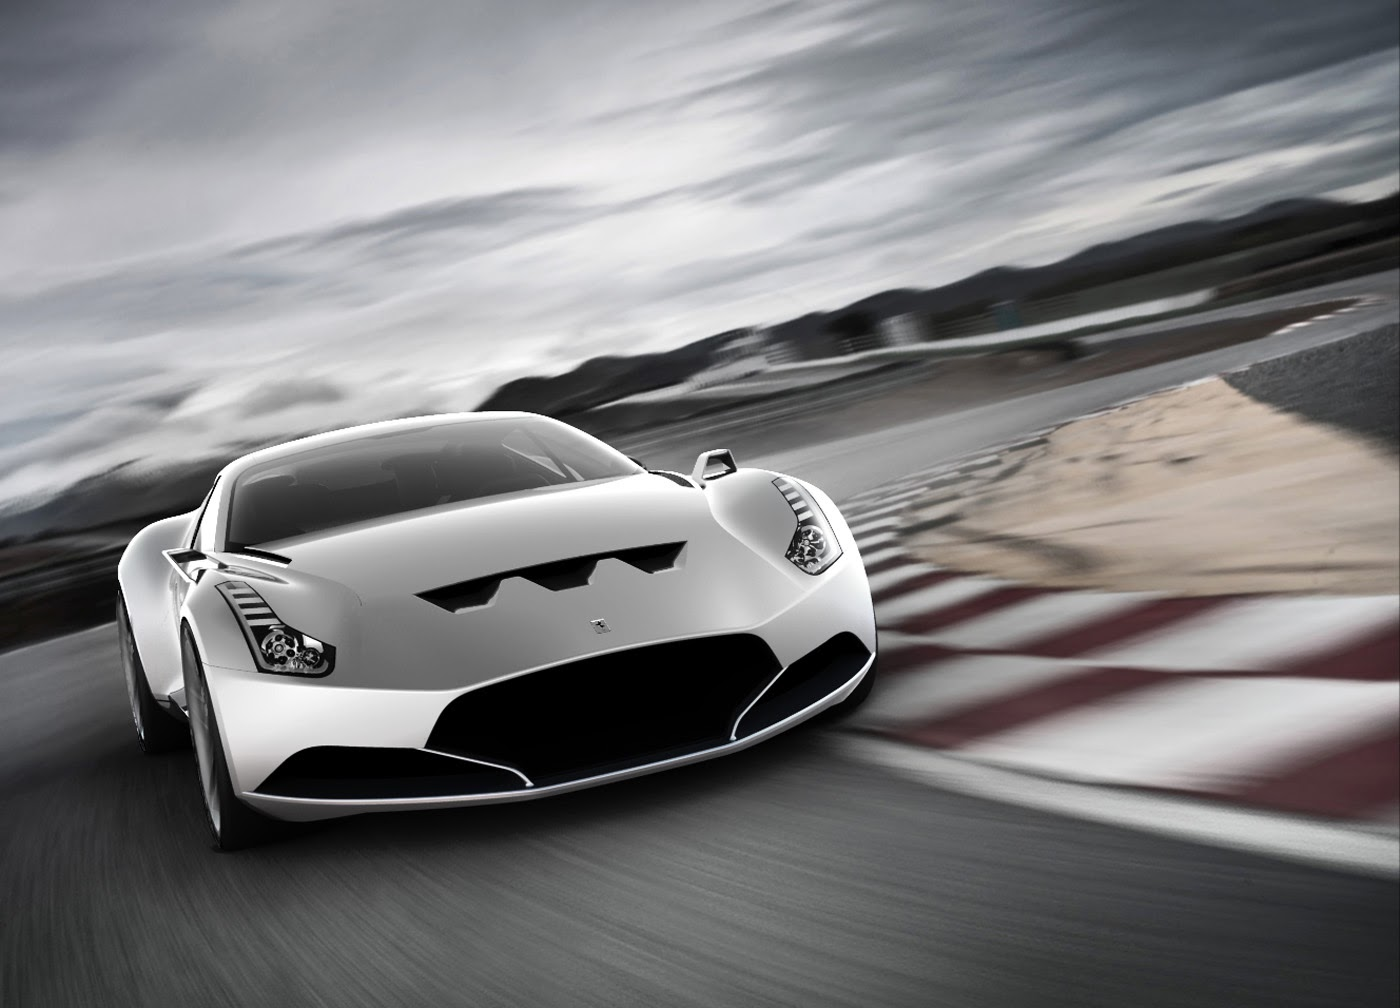 Ferrari 612 GTO concept prepared for 2015